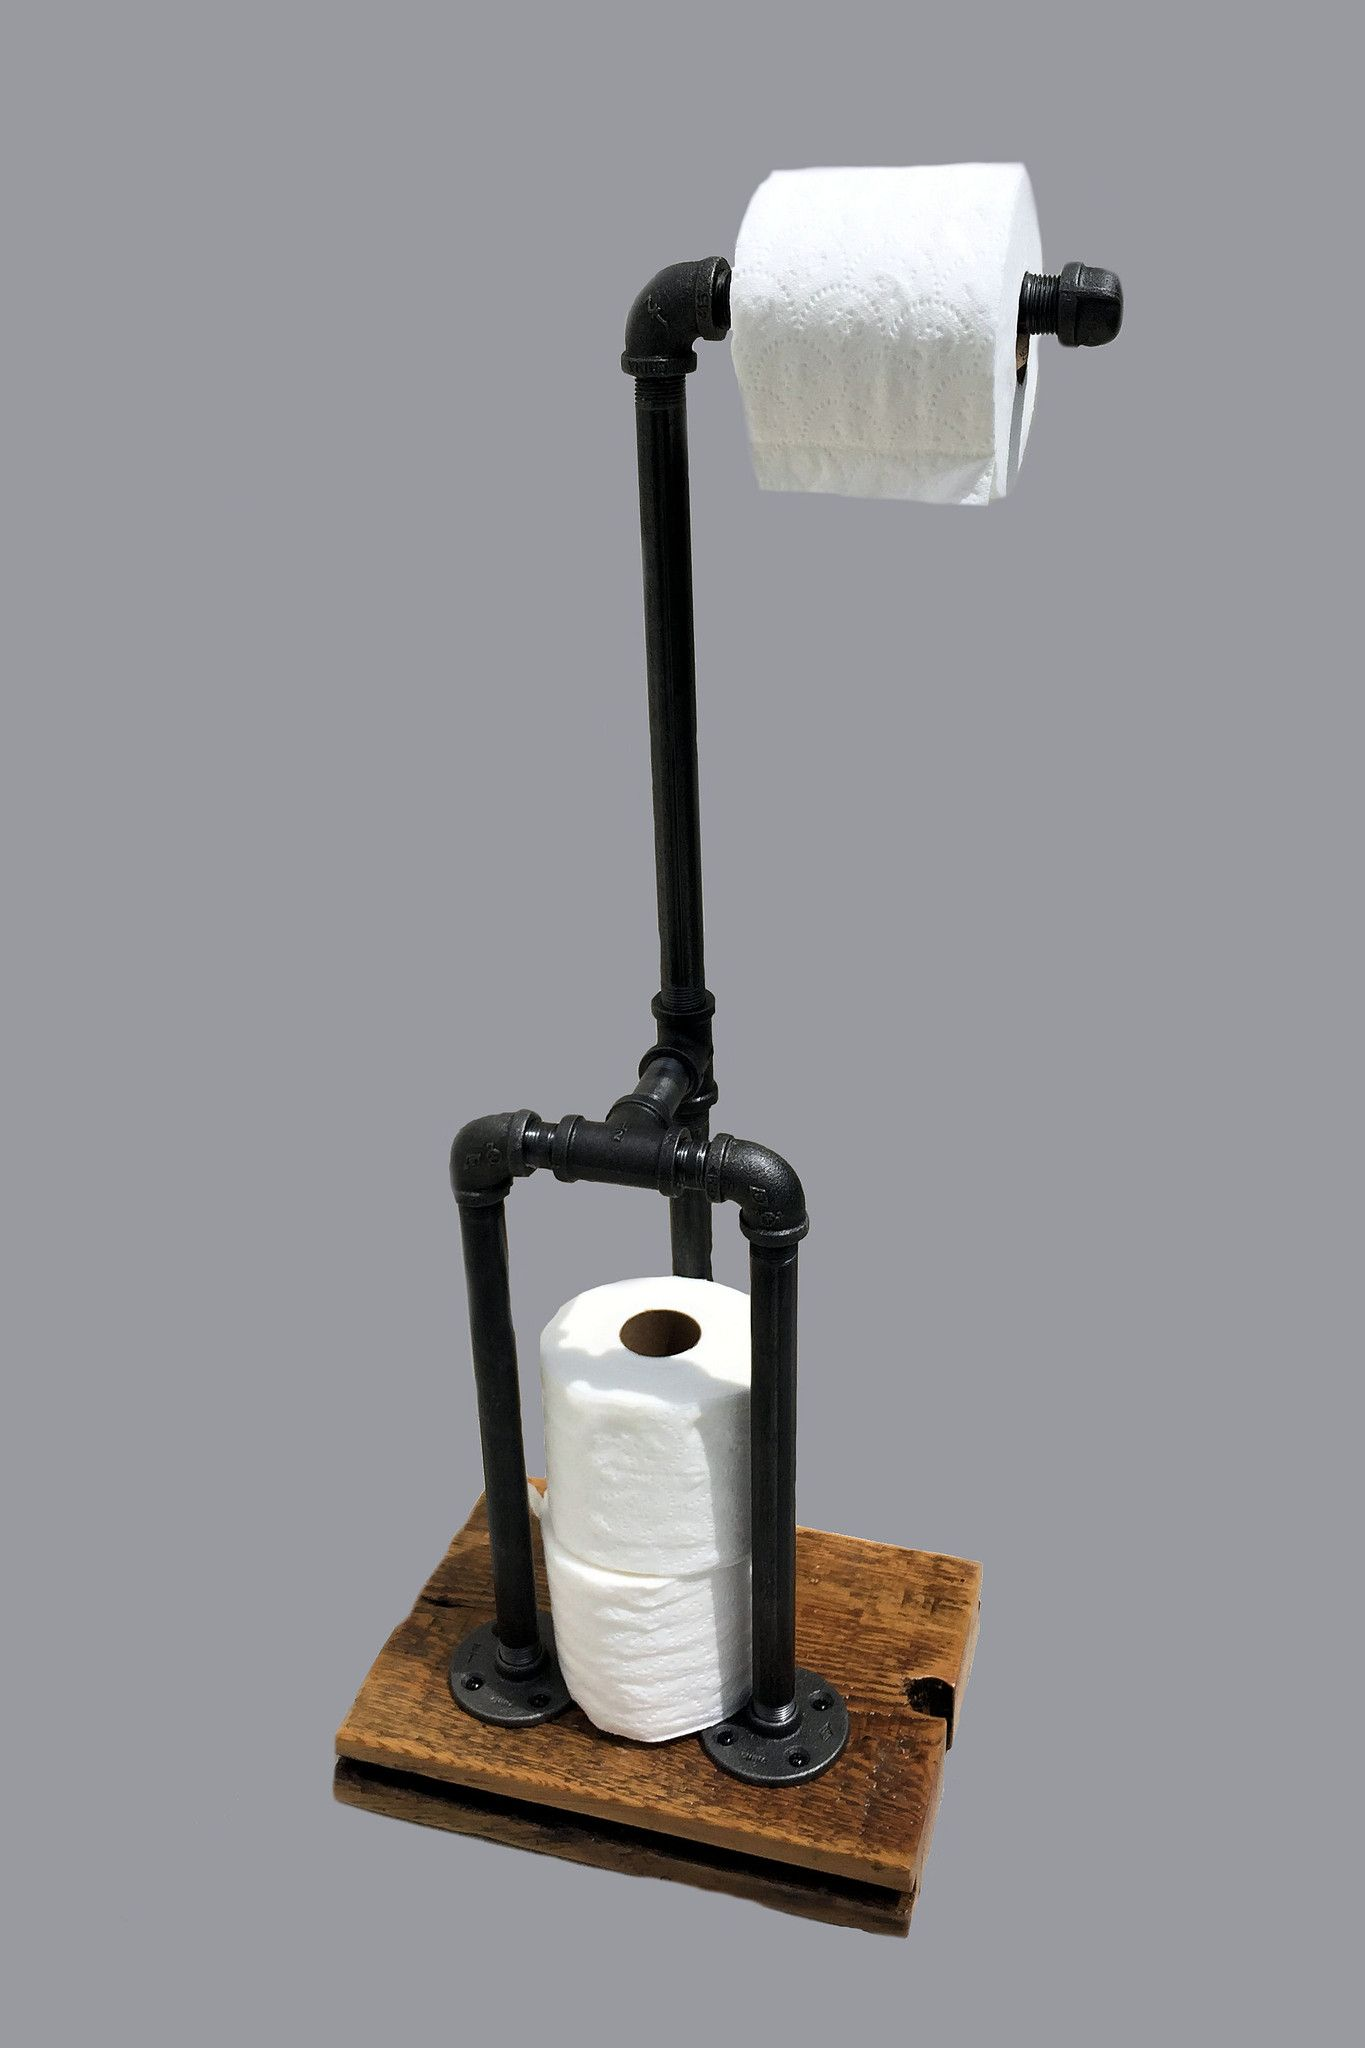 Toilet Paper Holder Stand Industrial toilet paper holders